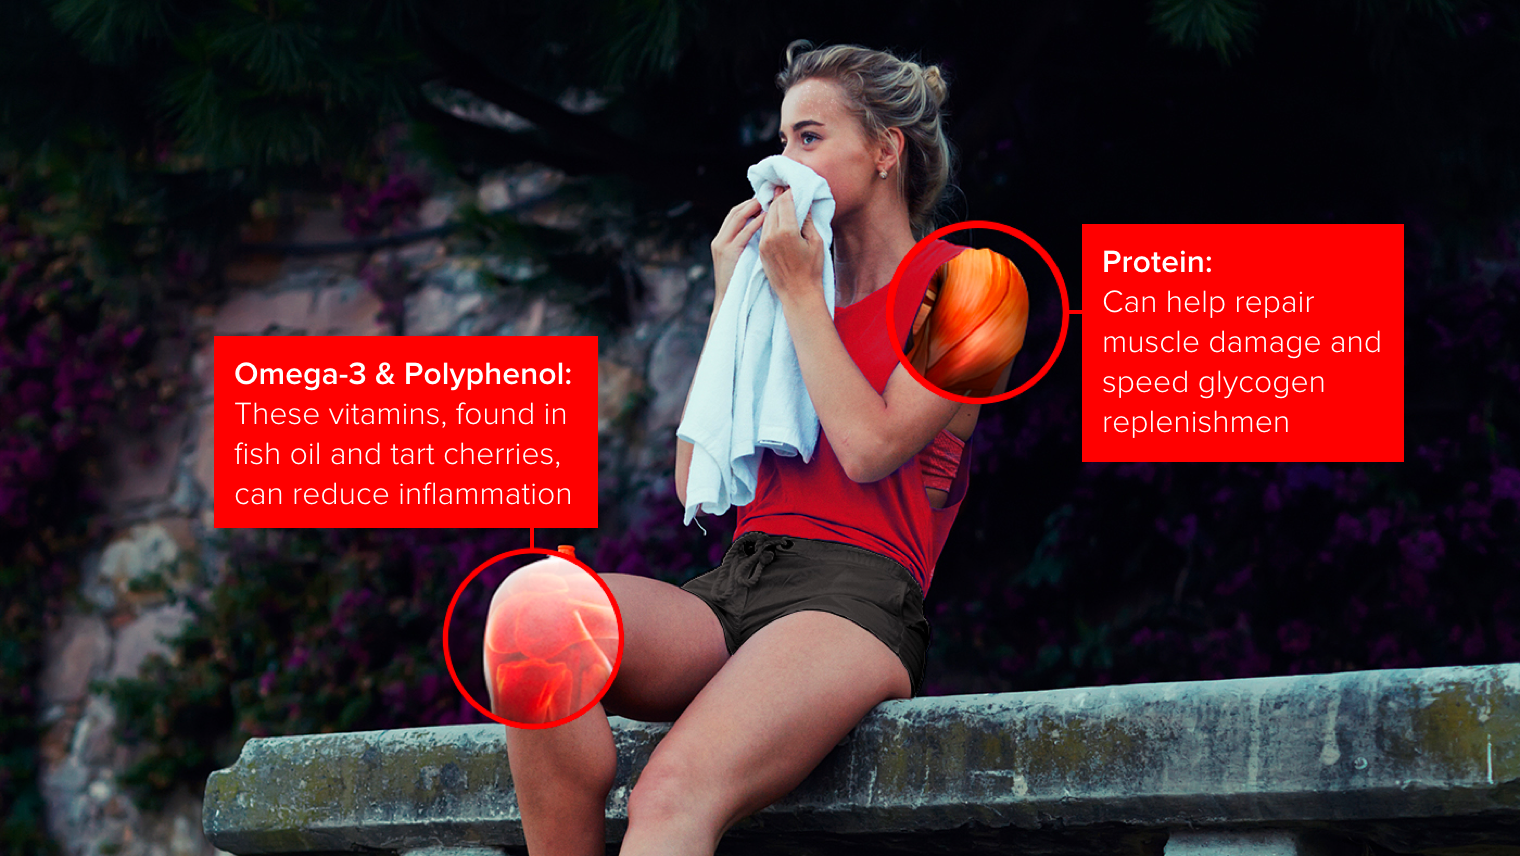 An image of a female runner on a bench. Her knee is highlighted, showing omega-3 and polyphenols can reduce inflammation. Her shoulder is highlighted to showcase protein can help repair muscle damage.